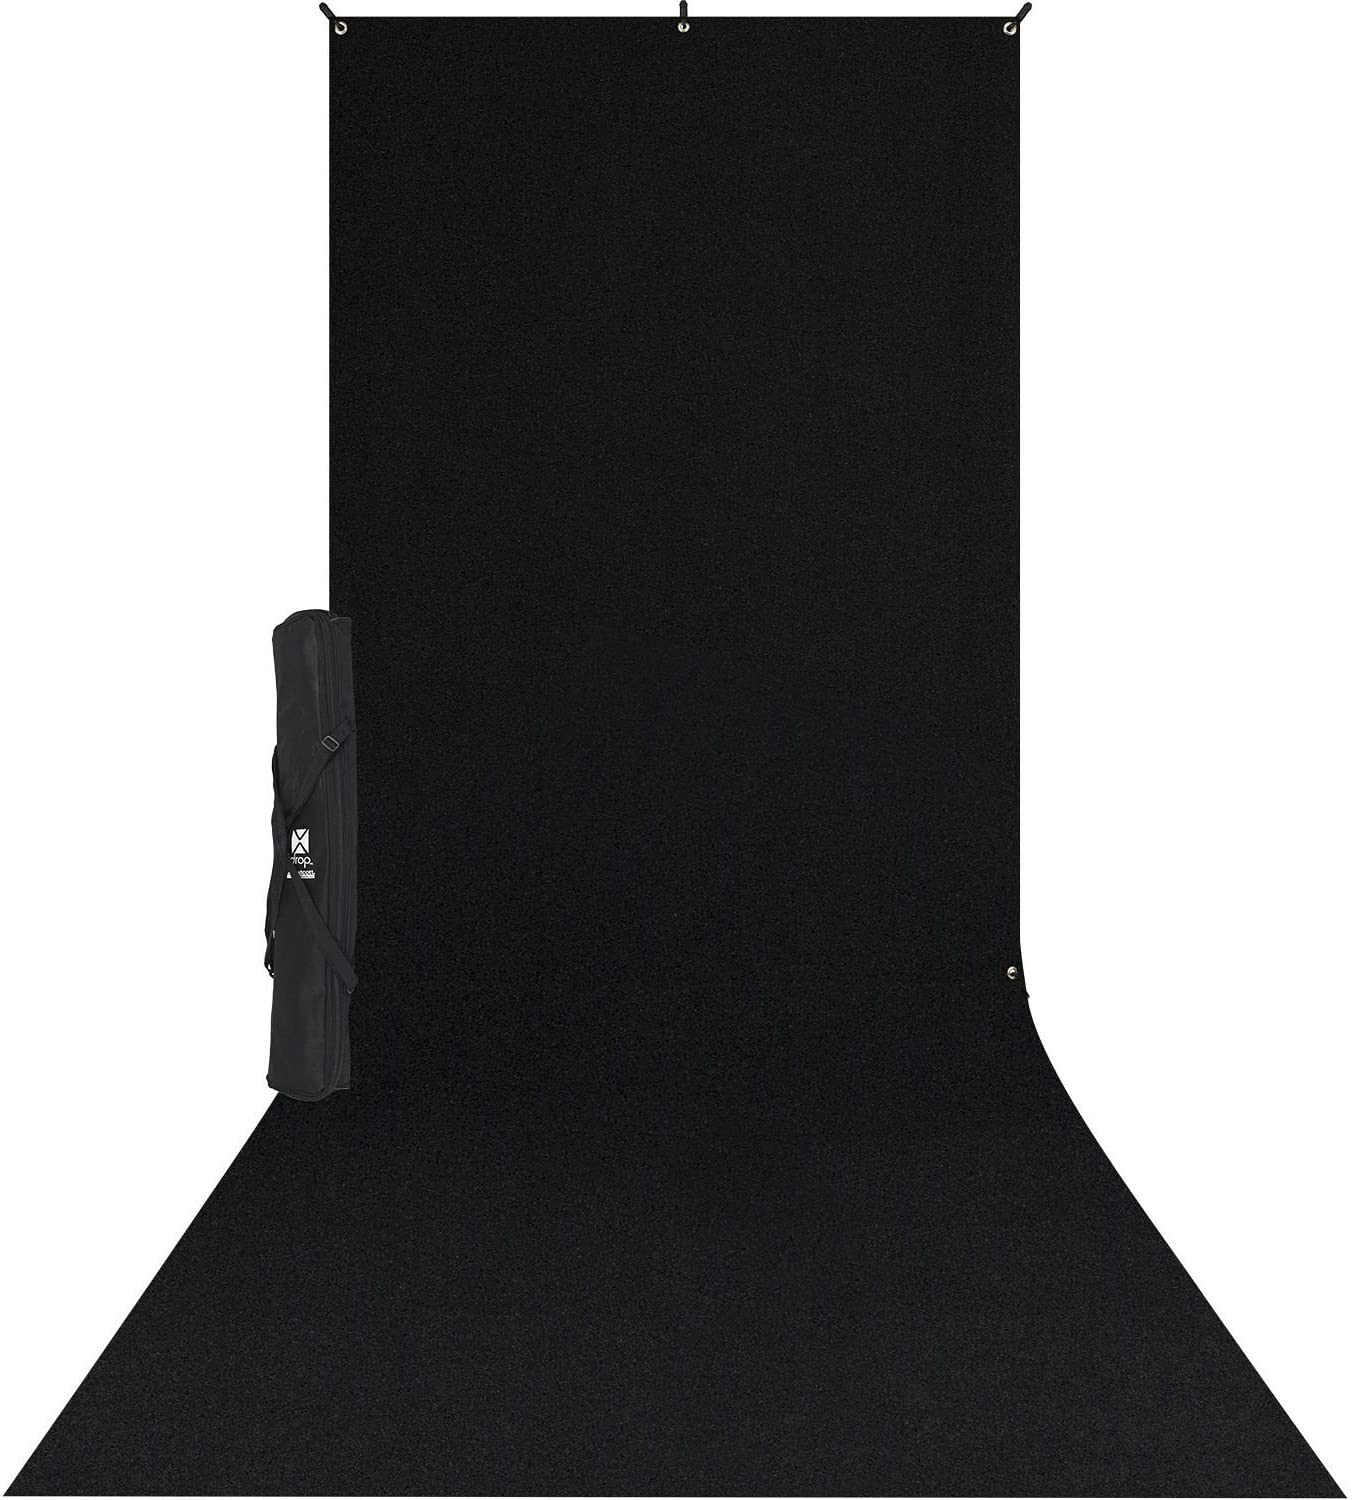 Indefinitely Westcott Popular shop is the lowest price challenge X-Drop Wrinkle-Resistant Backdrop Kit and Ca Stand with